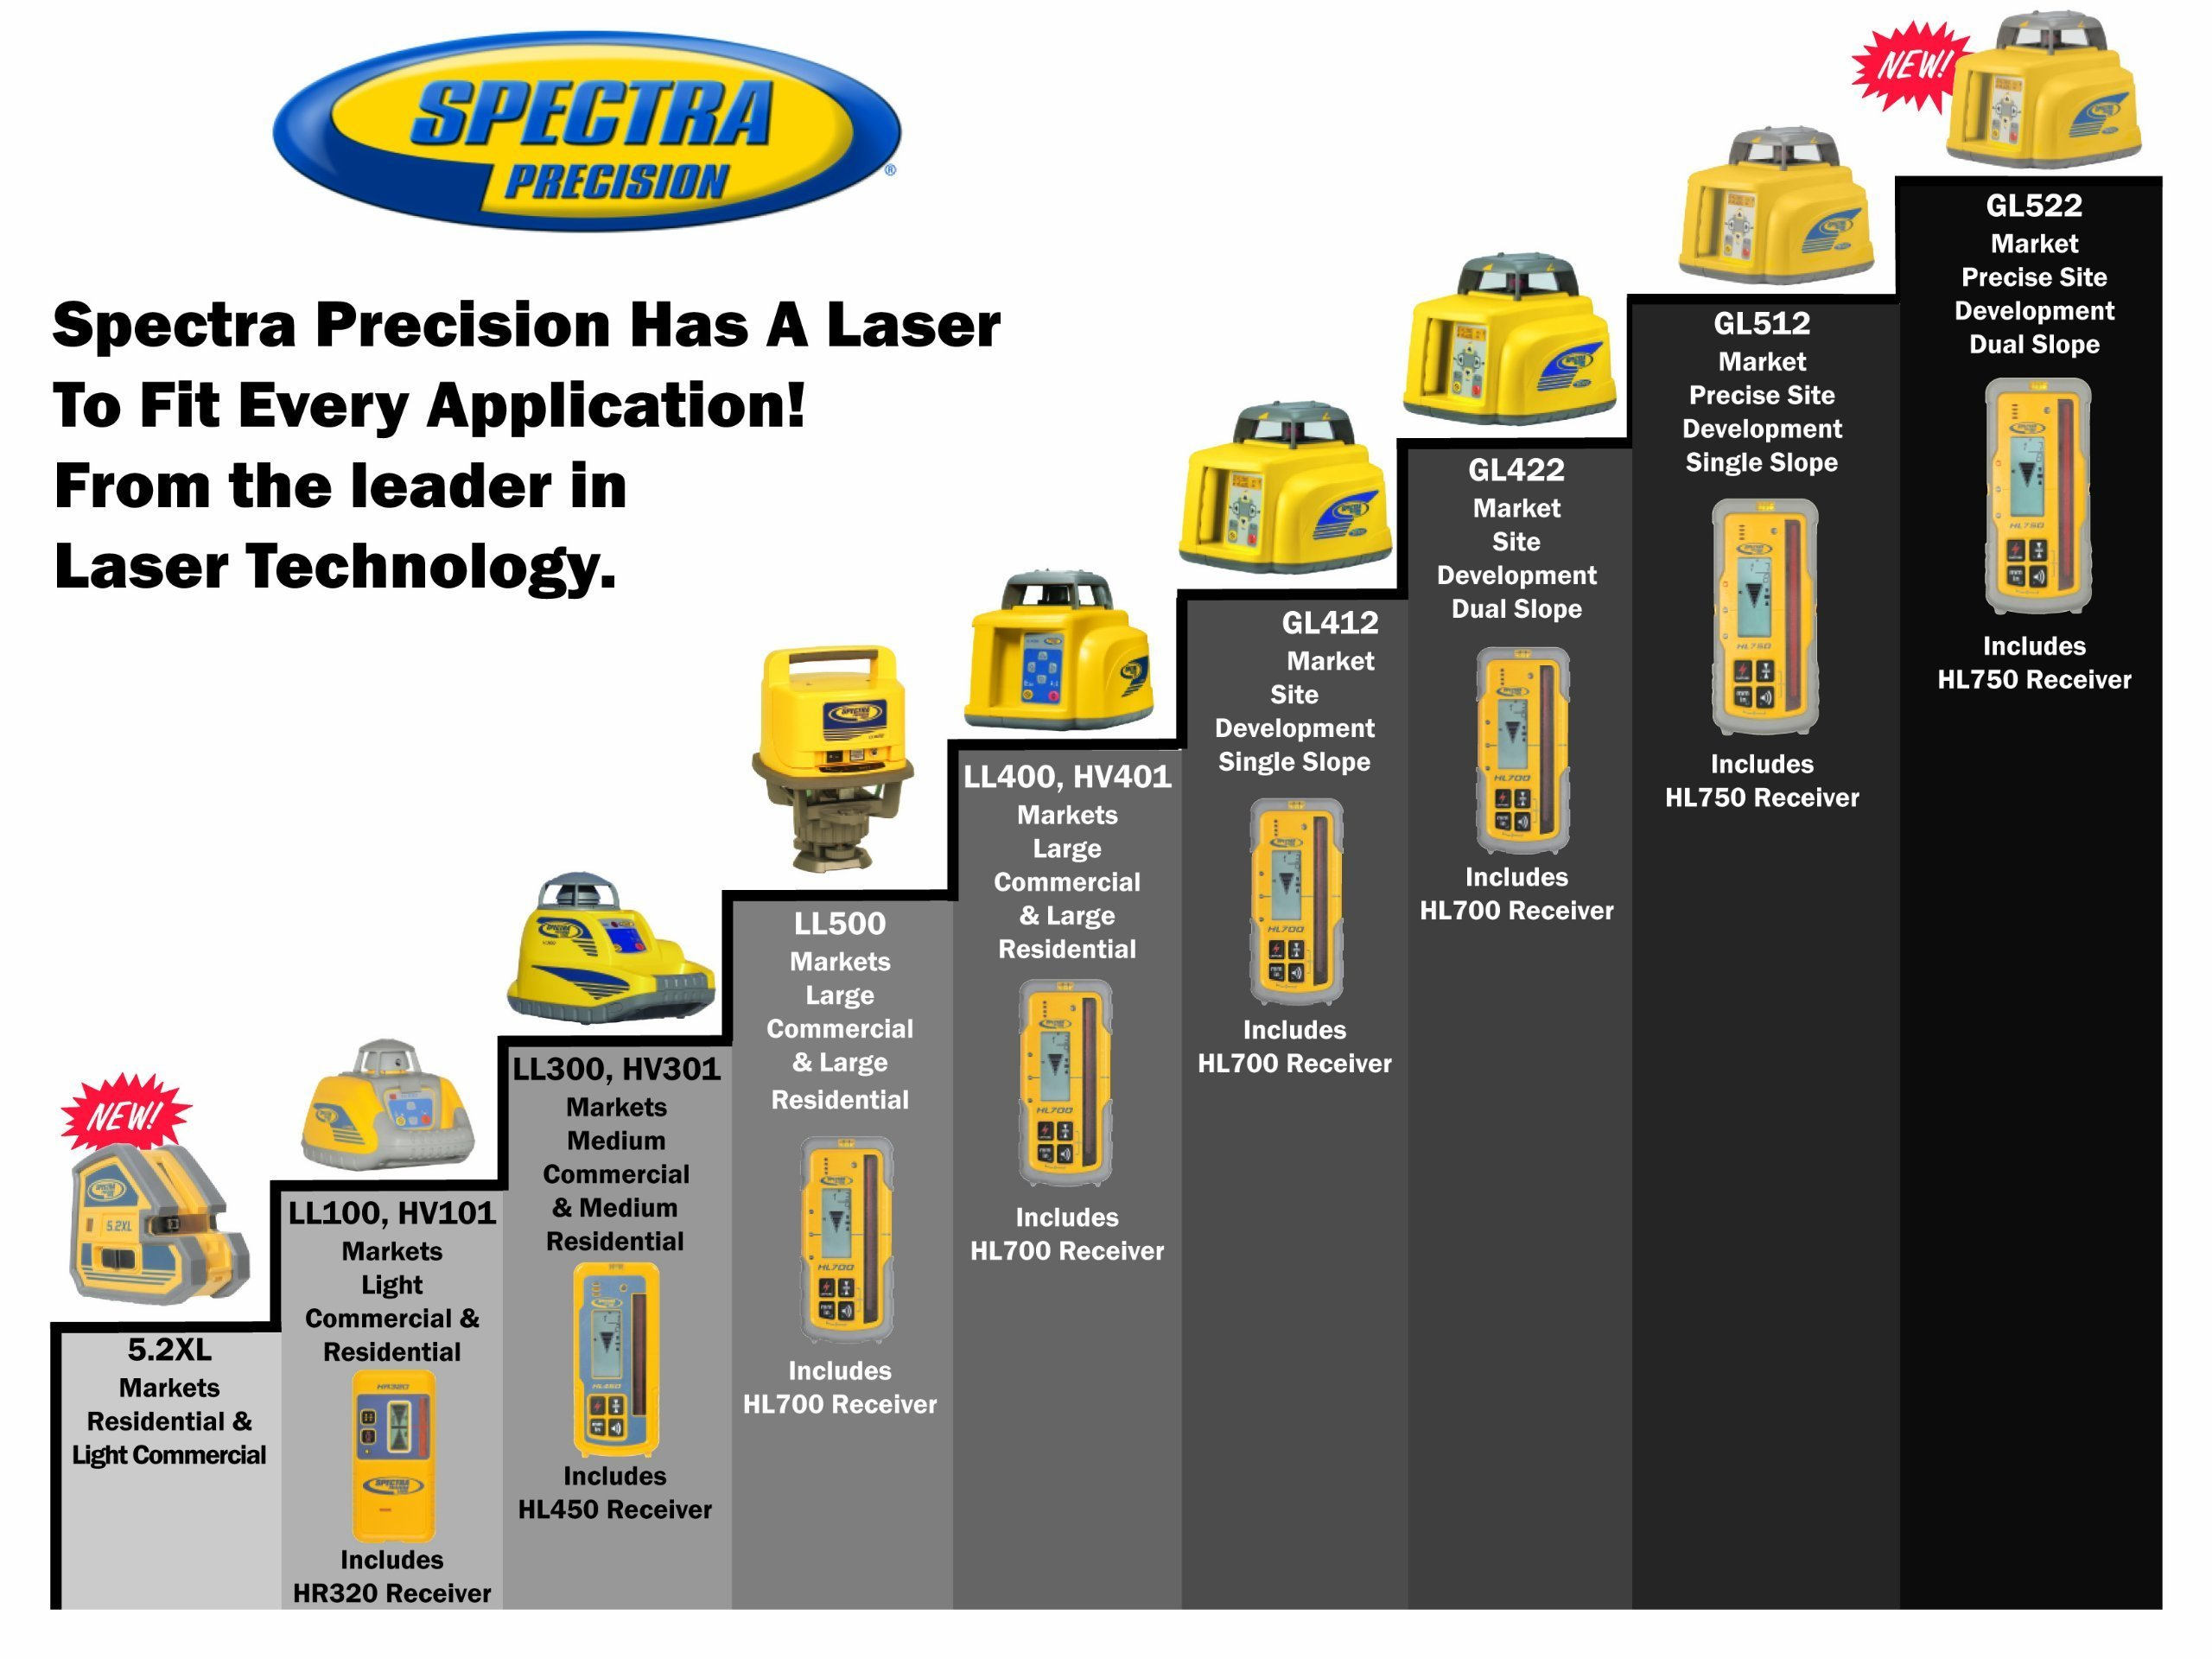 Spectra Precision Laser LL300-2 Automatic Self-leveling Laser Level, 10-Foot Grade Rod and Tripod Kit